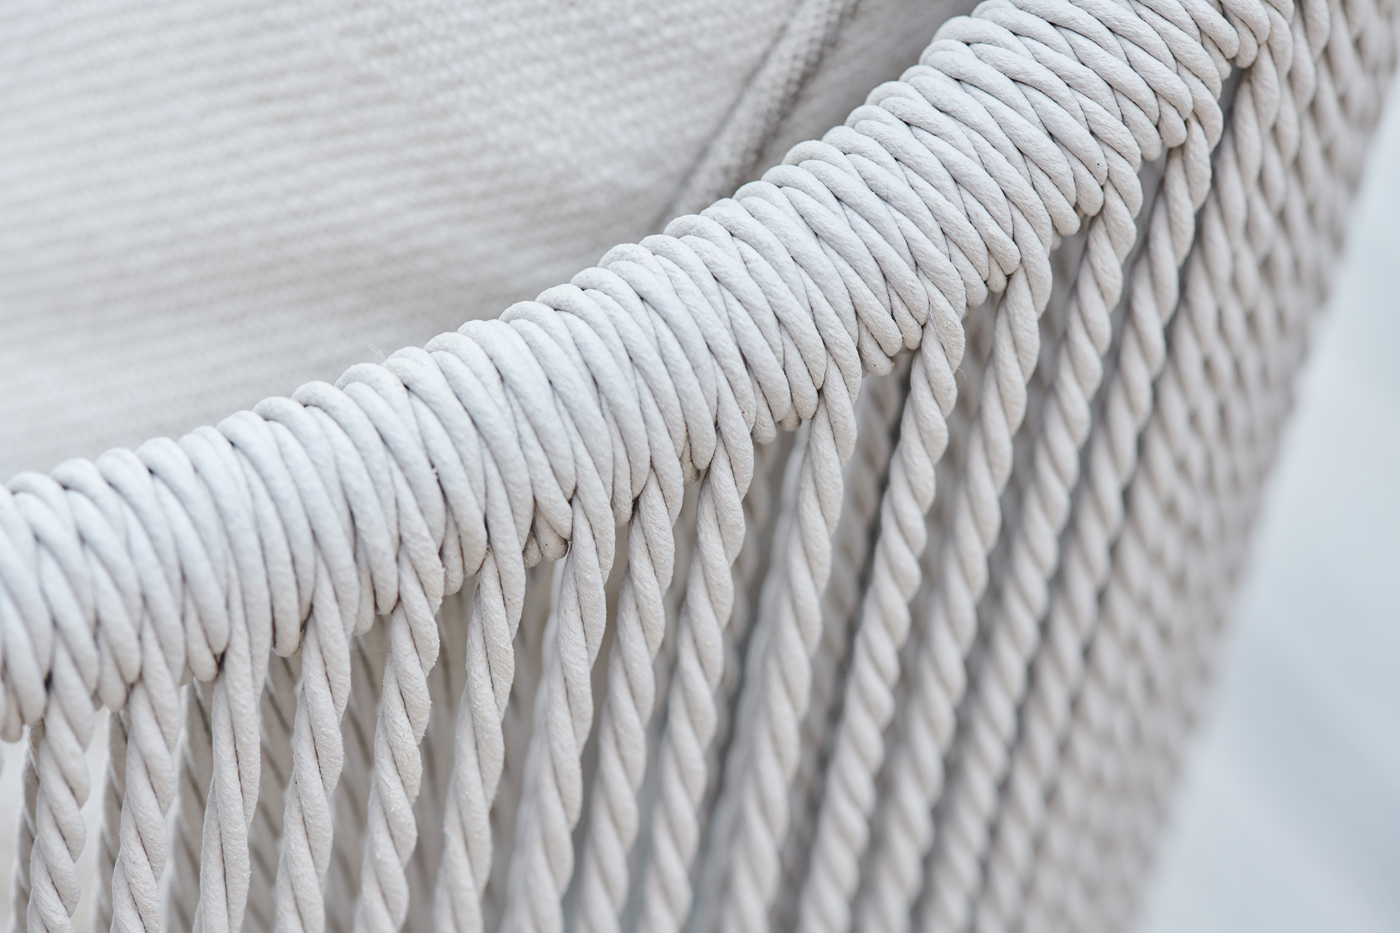 Woven details of outdoor chair